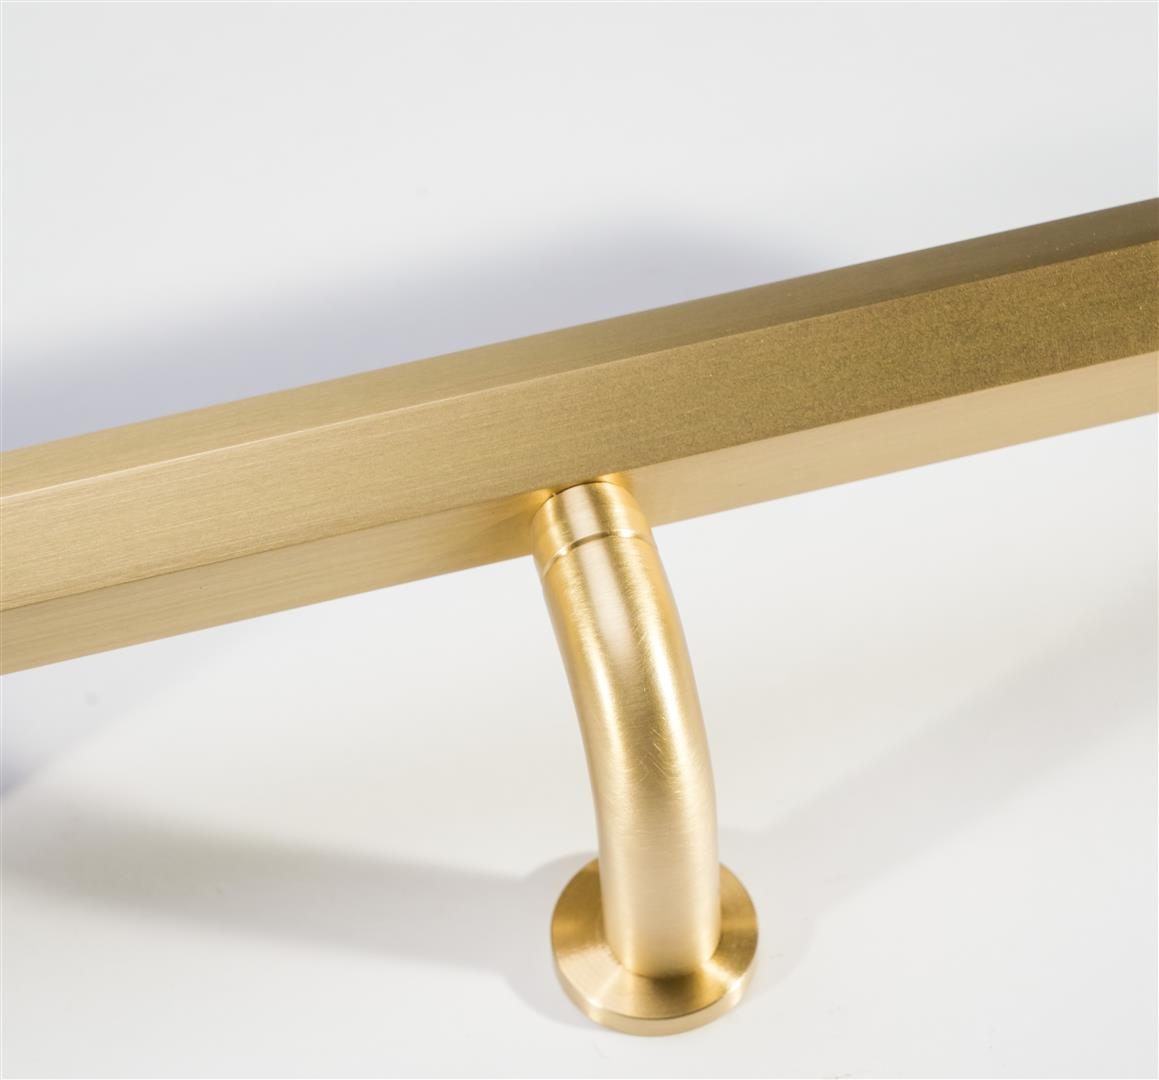 Custom Bronze Door and Drawer Pulls, Multiple Sizes and Finishes Available. Grained Satin and Lacquered Brass is Shown with a custom Offset bracket.